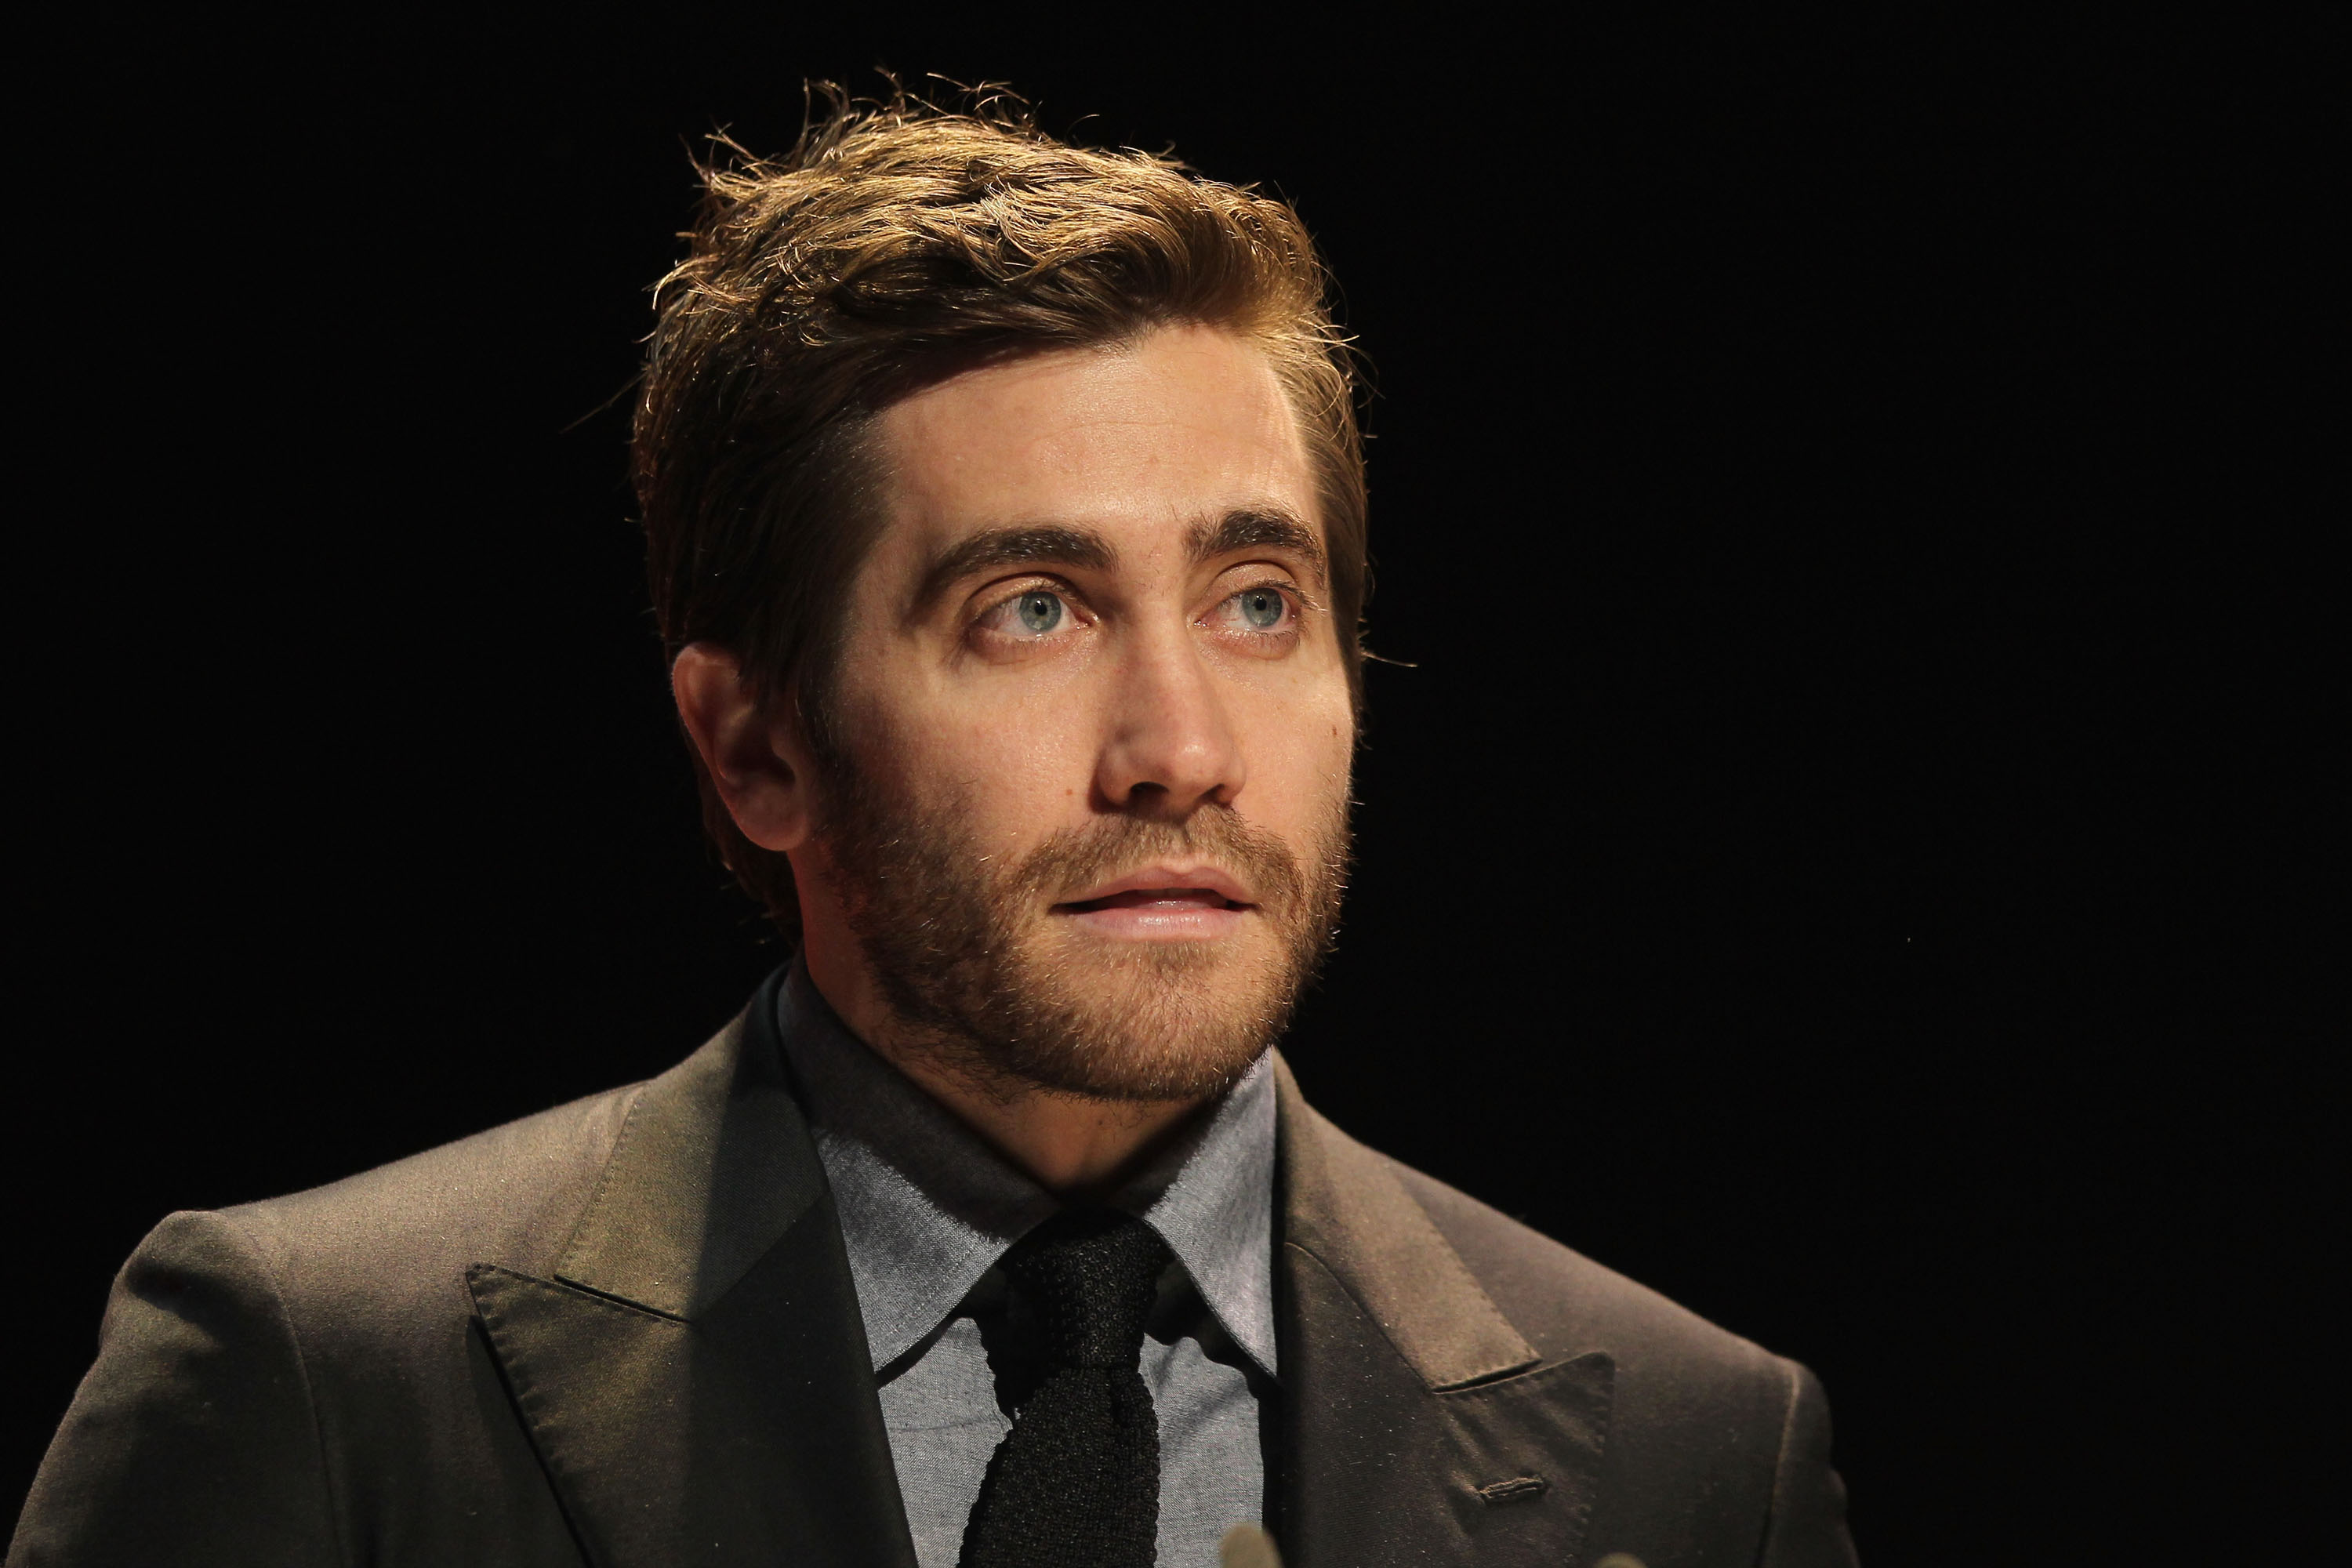 jake gyllenhaal wide wallpaper 50416